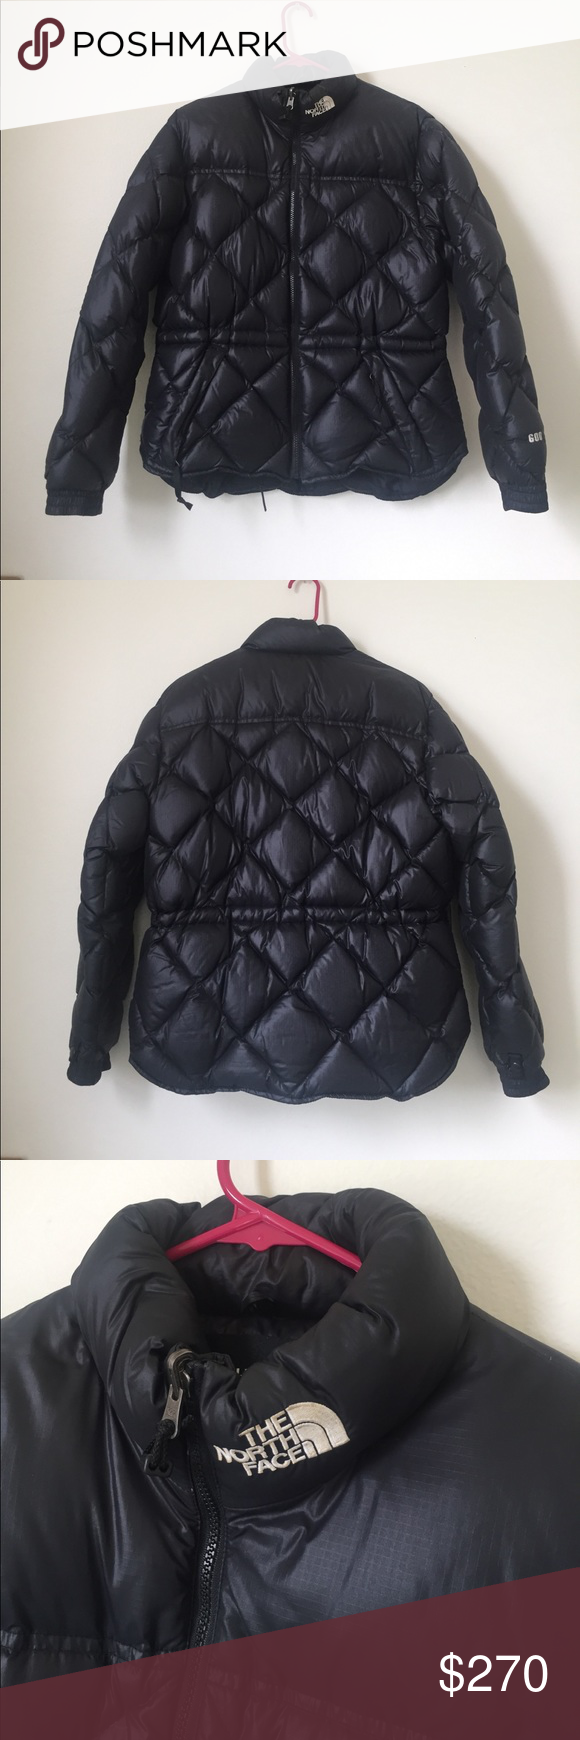 The North Face Down Jacket Black North Face Jacket Down Jacket Black North Face [ 1740 x 580 Pixel ]